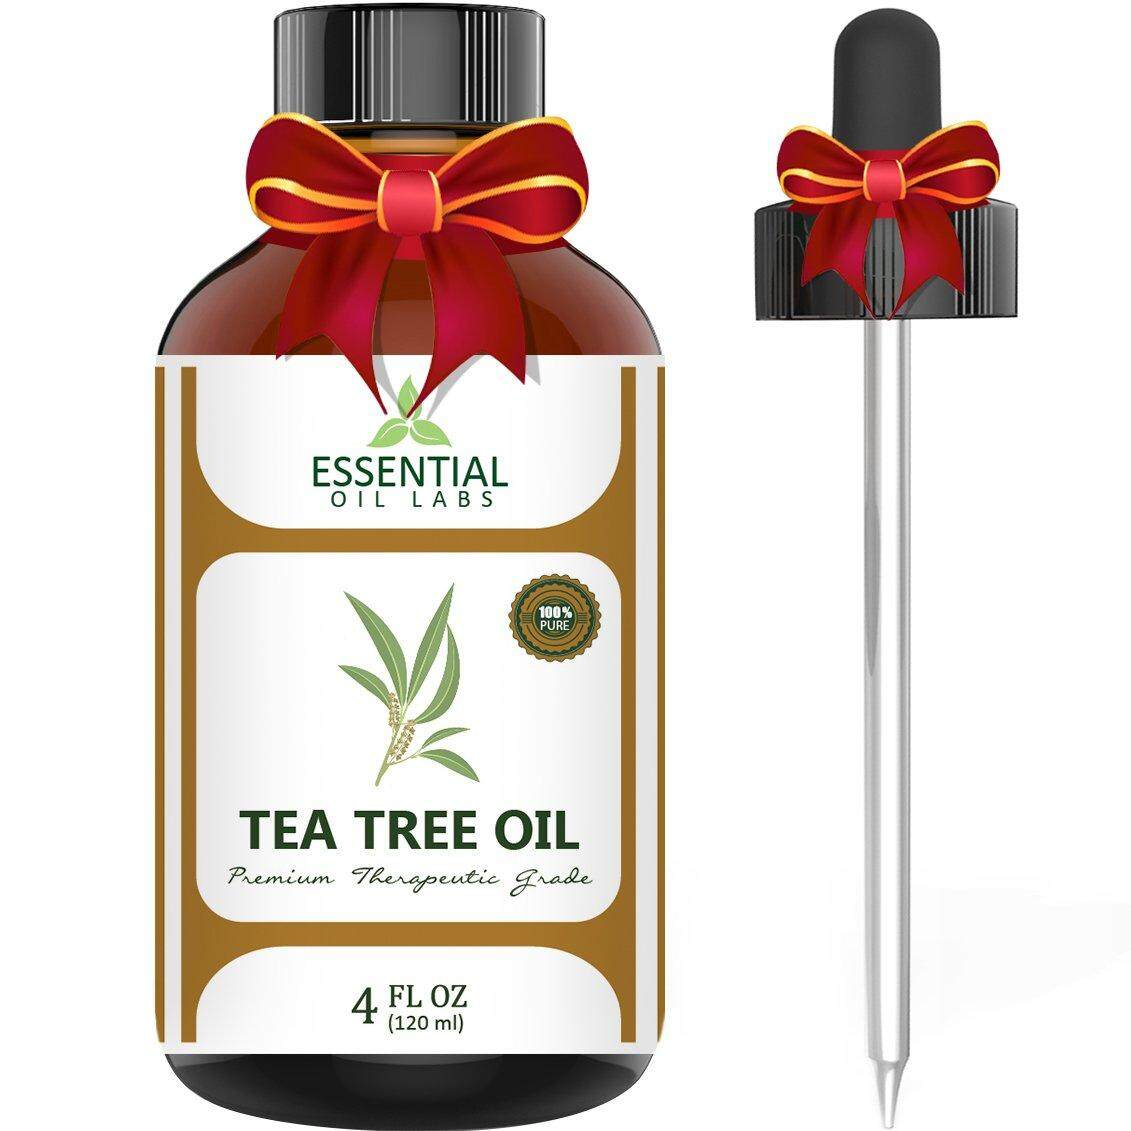 Essential Oil Labs Tea Tree Oil - 100% Pure and Natural Therapeutic Grade Australian Melaleuca Backed by Medical Research - Large 4 fl oz - with Premium Glass Dropper